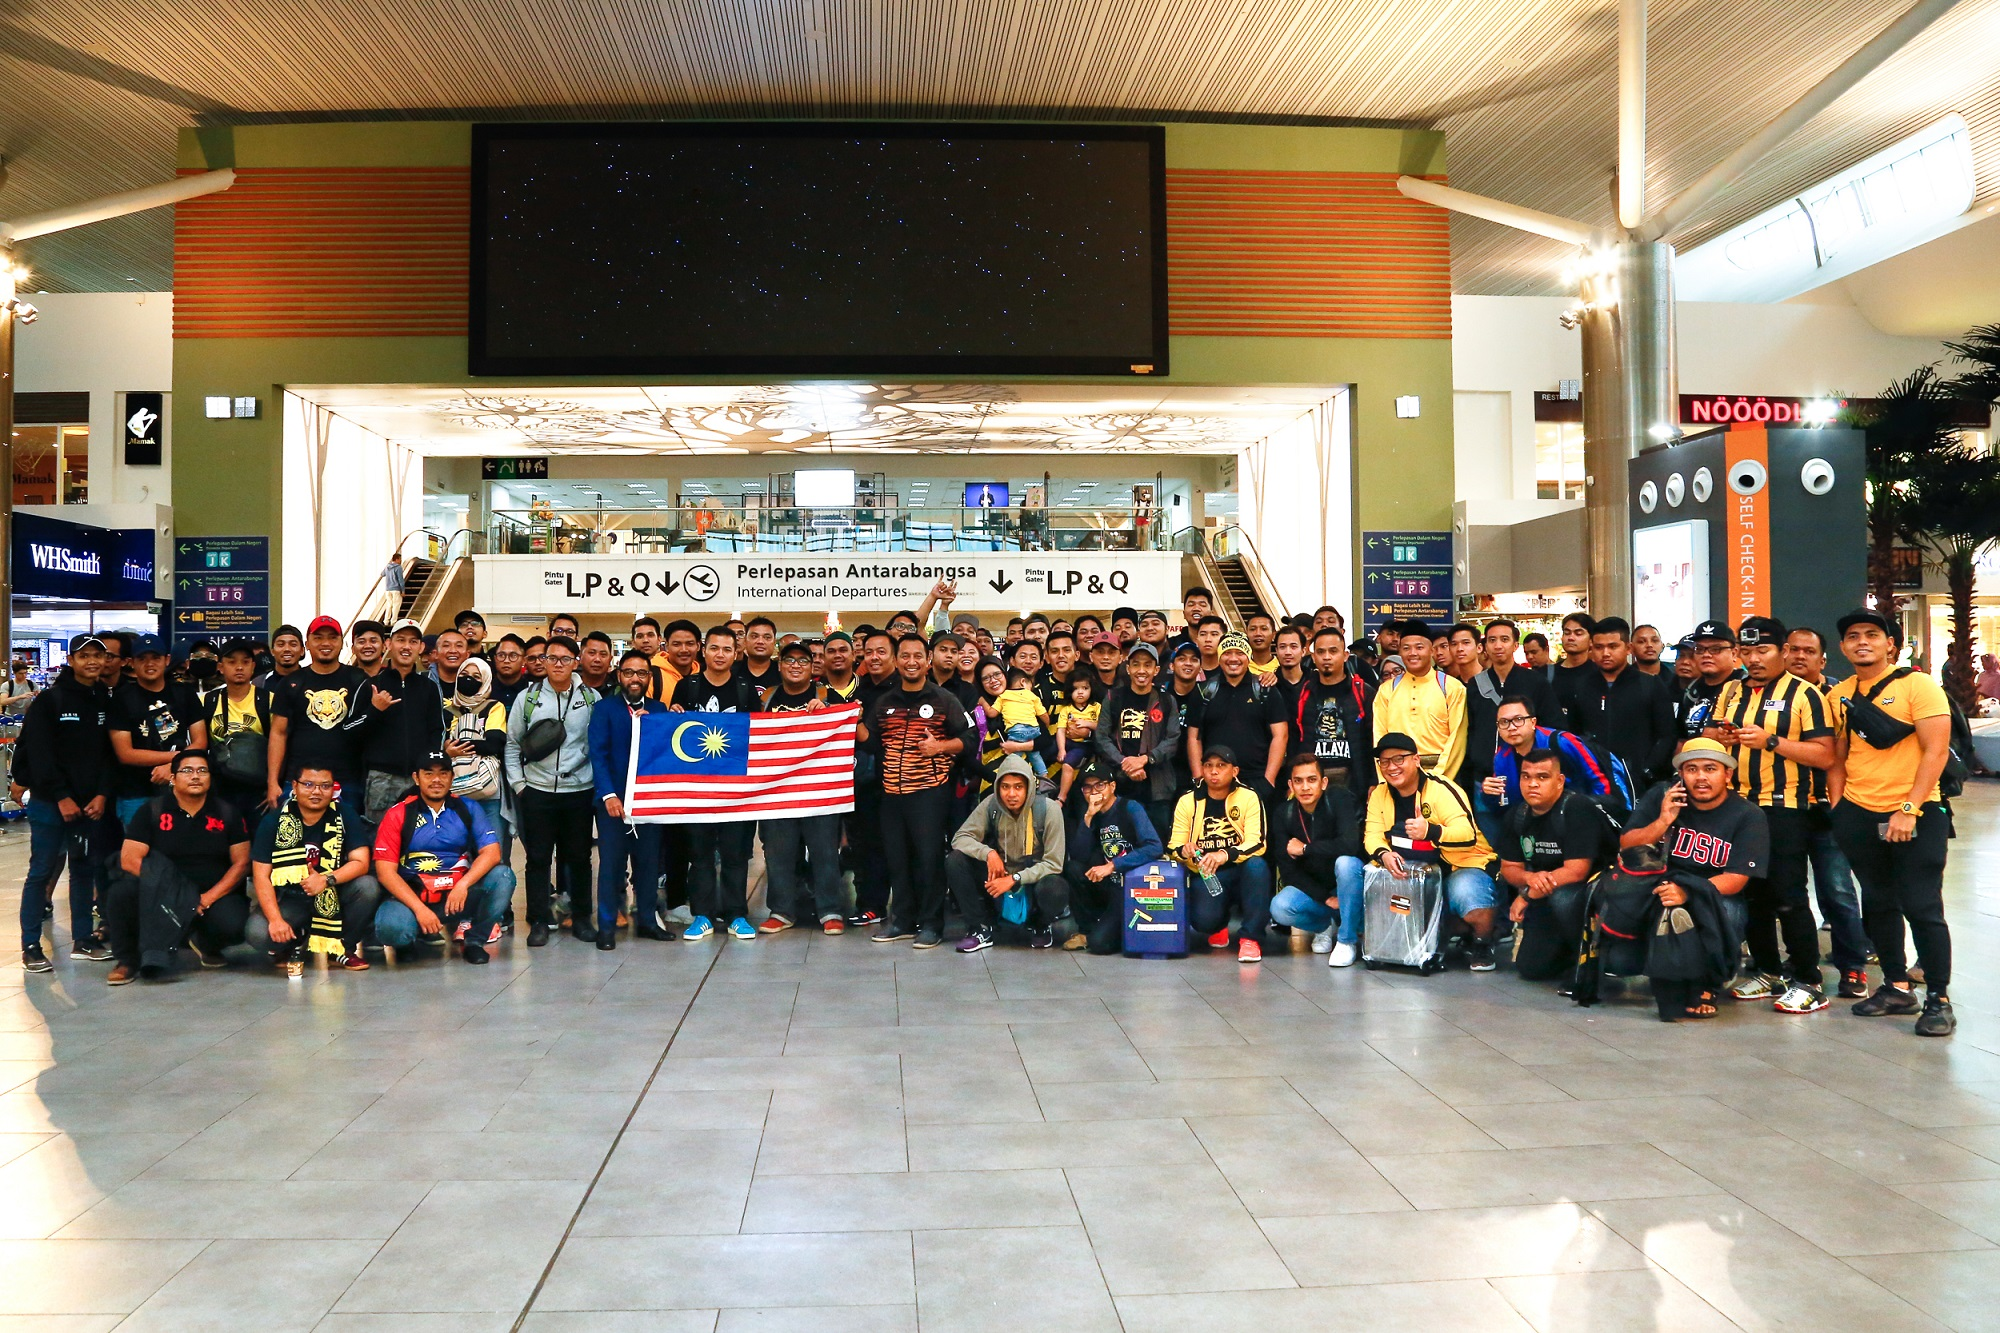 Harimau Malaya supporters were sent off in a special ceremony at Kuala Lumpur International Airport (klia2) attended by Malaysian Ministry of Youth and Sports Secretary General Dato' Lokman Hakim Ali and AirAsia Malaysia CEO Riad Asmat.